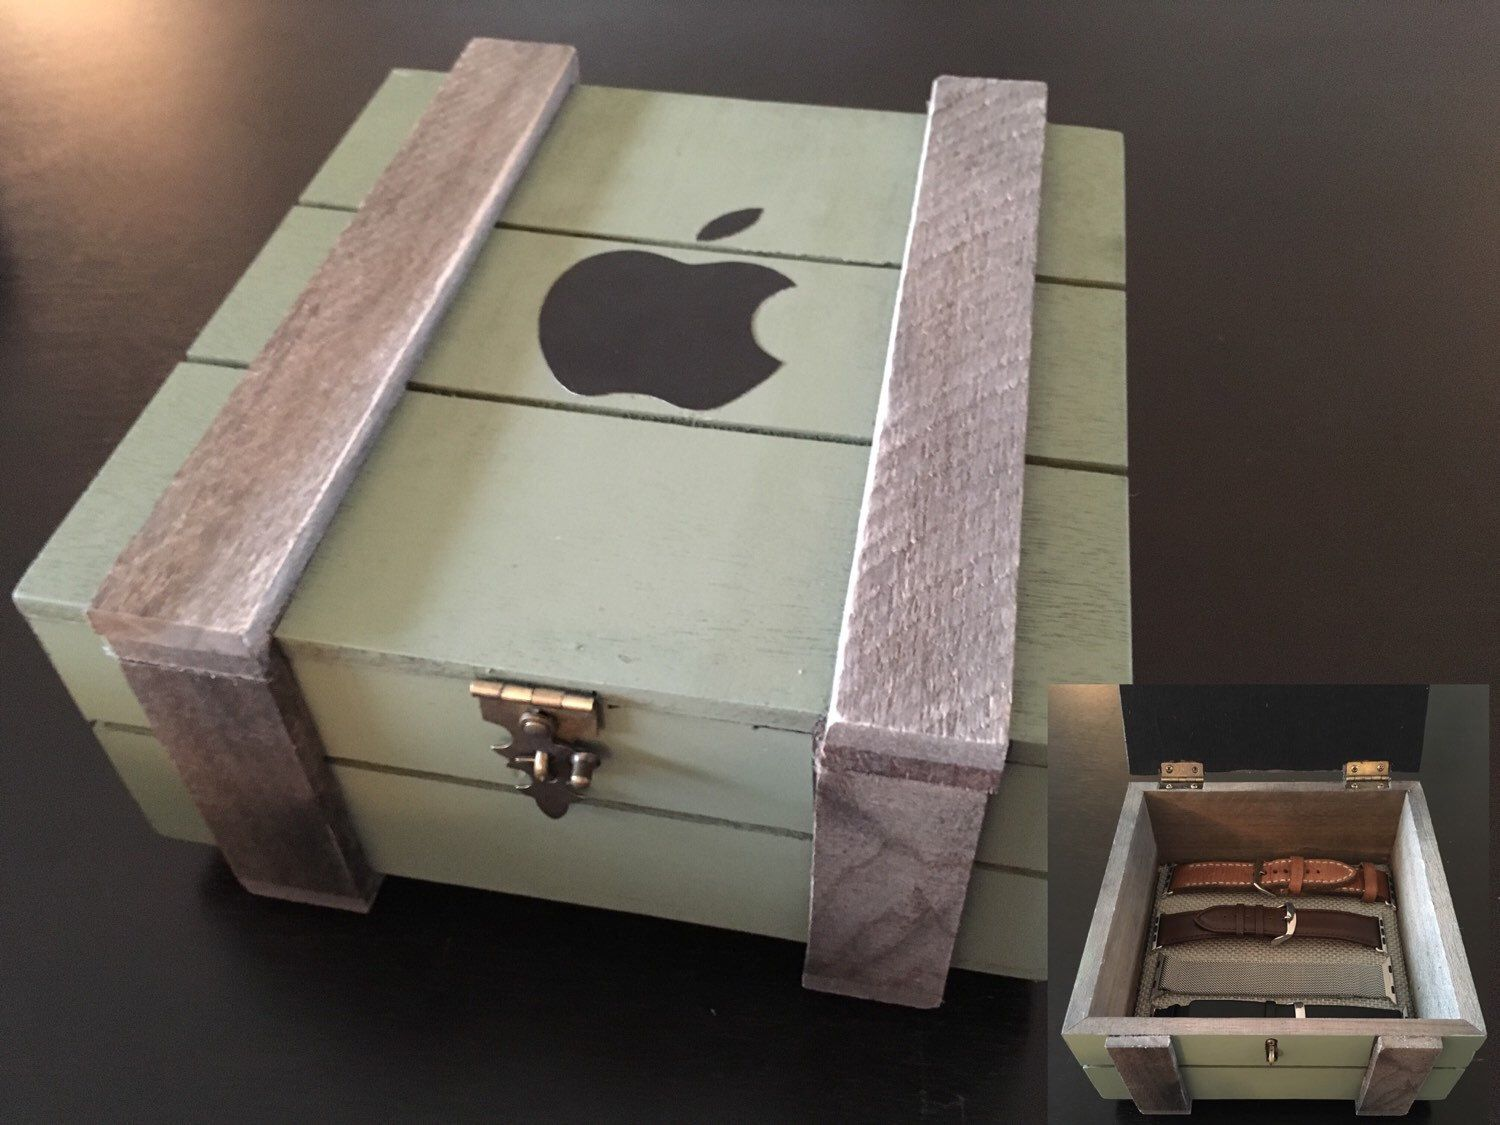 Apple Watch Band Storage Crate Style By Applevalleywatchbox On Etsy Https Www Etsy Com Listing 266869055 Apple Watch Ba Crate Storage Crates Diy Watch Band